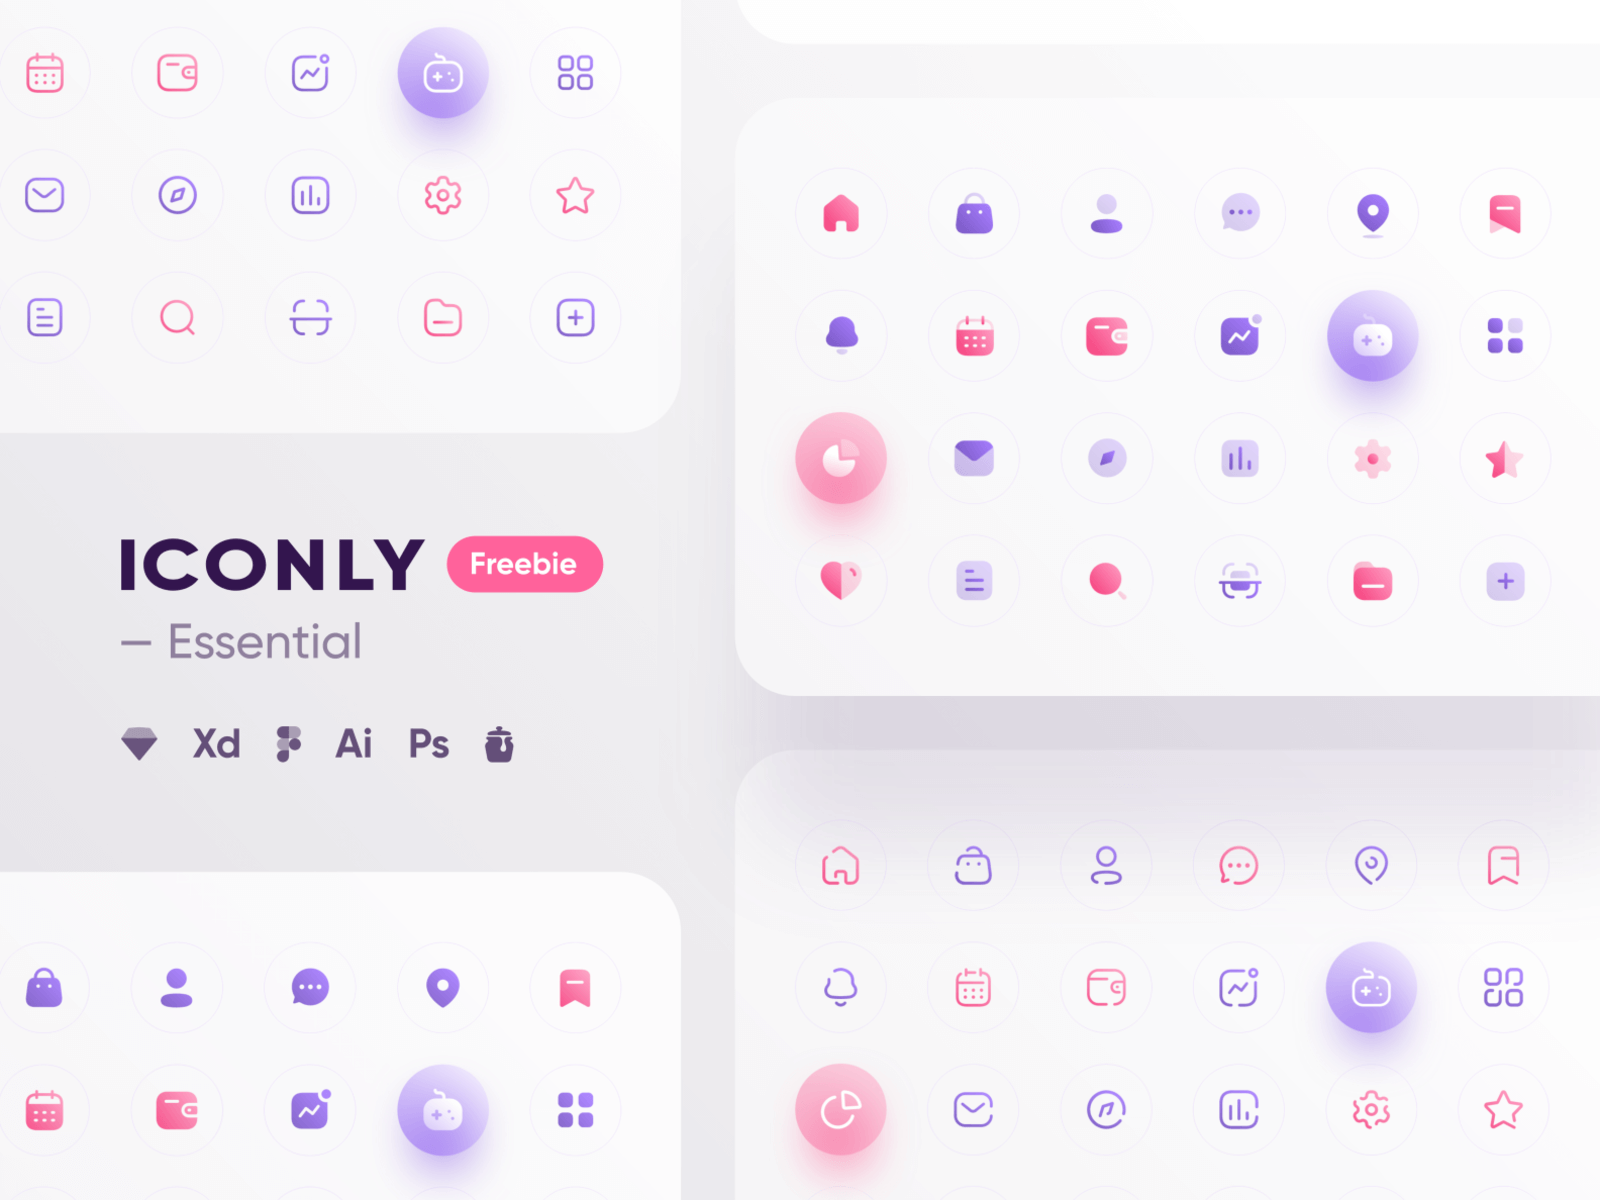 Iconly - Essential icons cover image